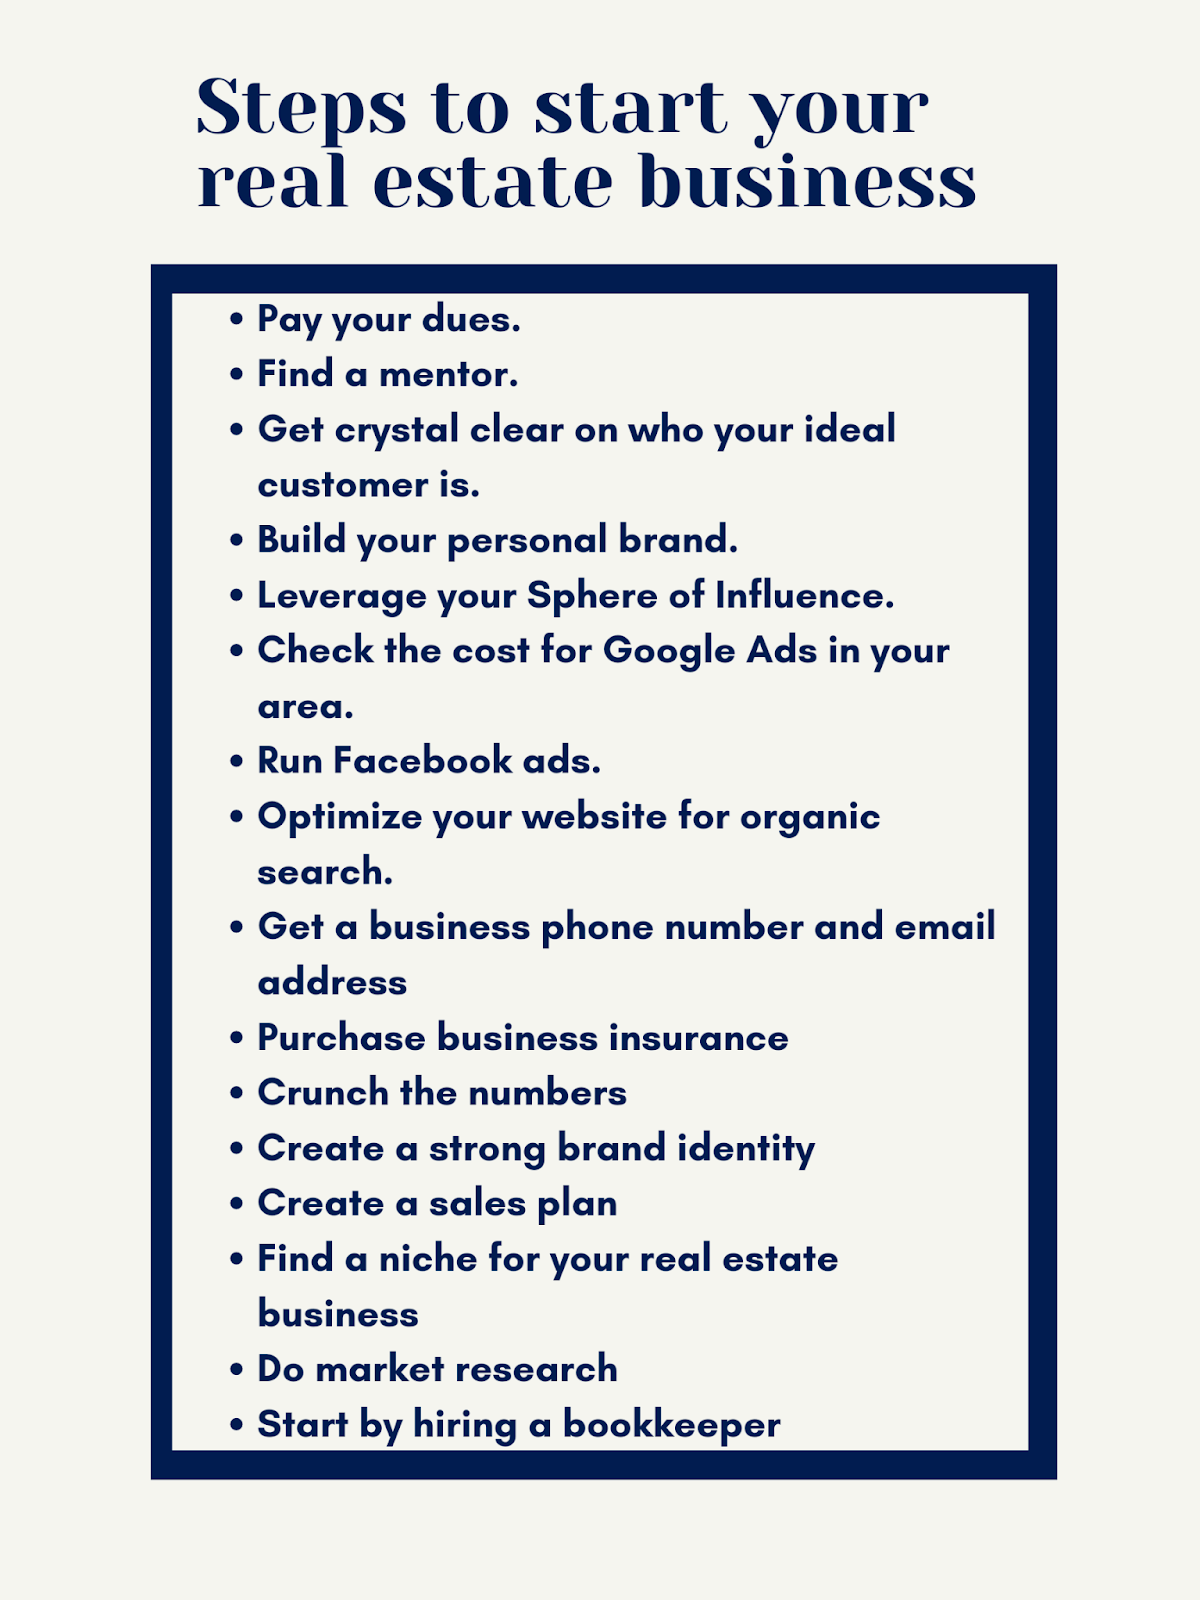 Steps to start business - 2